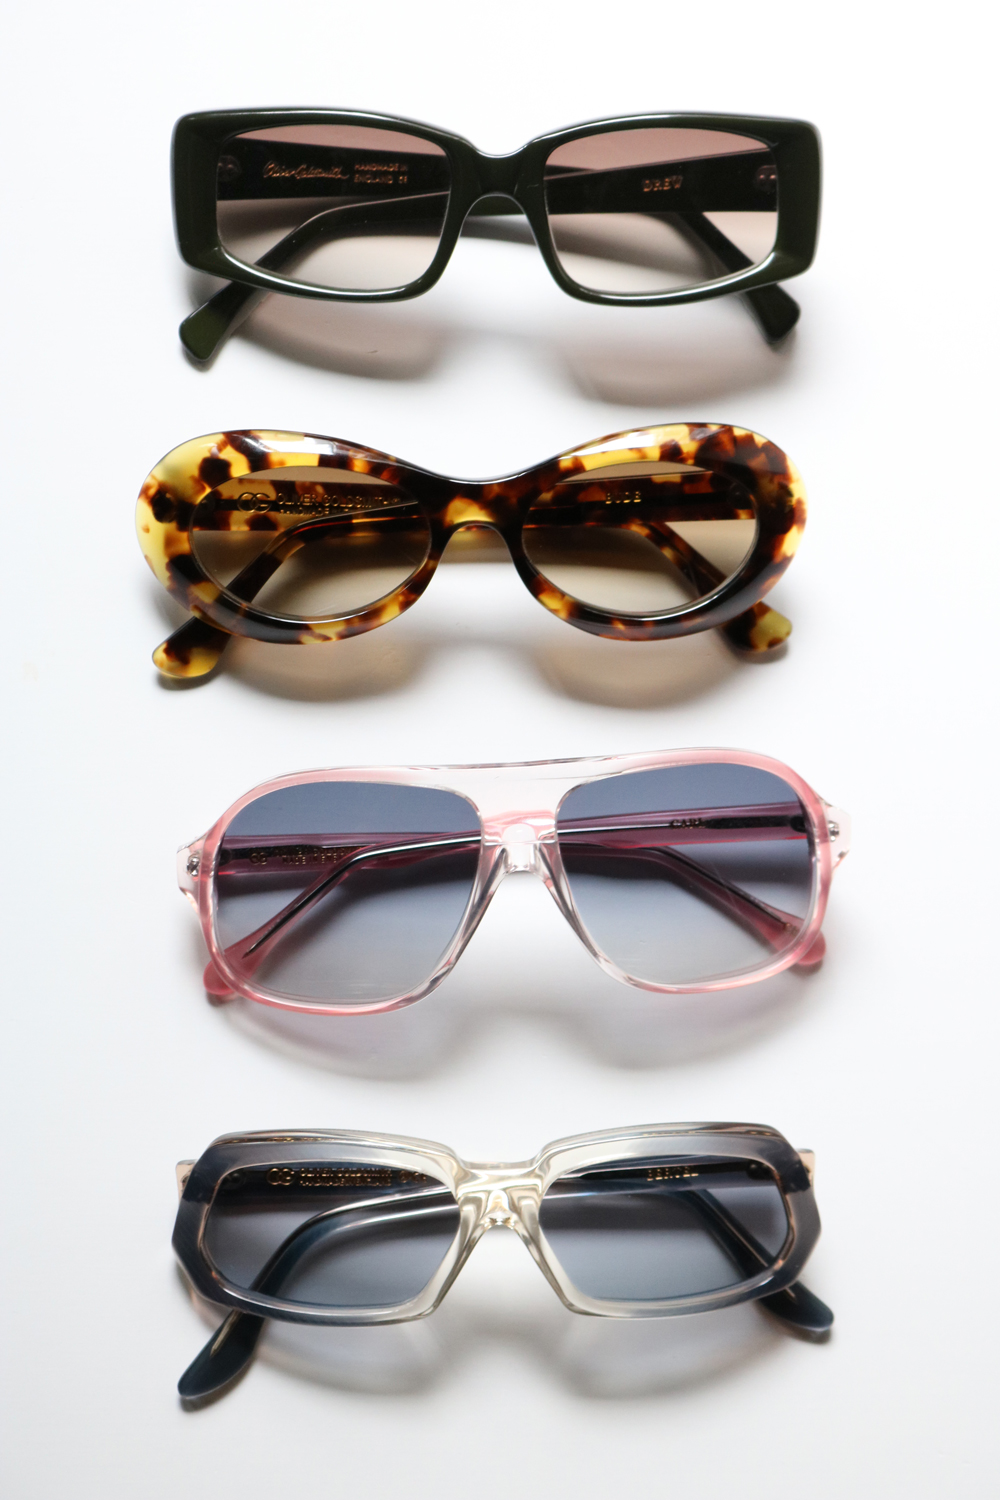 HAND MADE IN ENGLAND|OLIVER GOLDSMITH